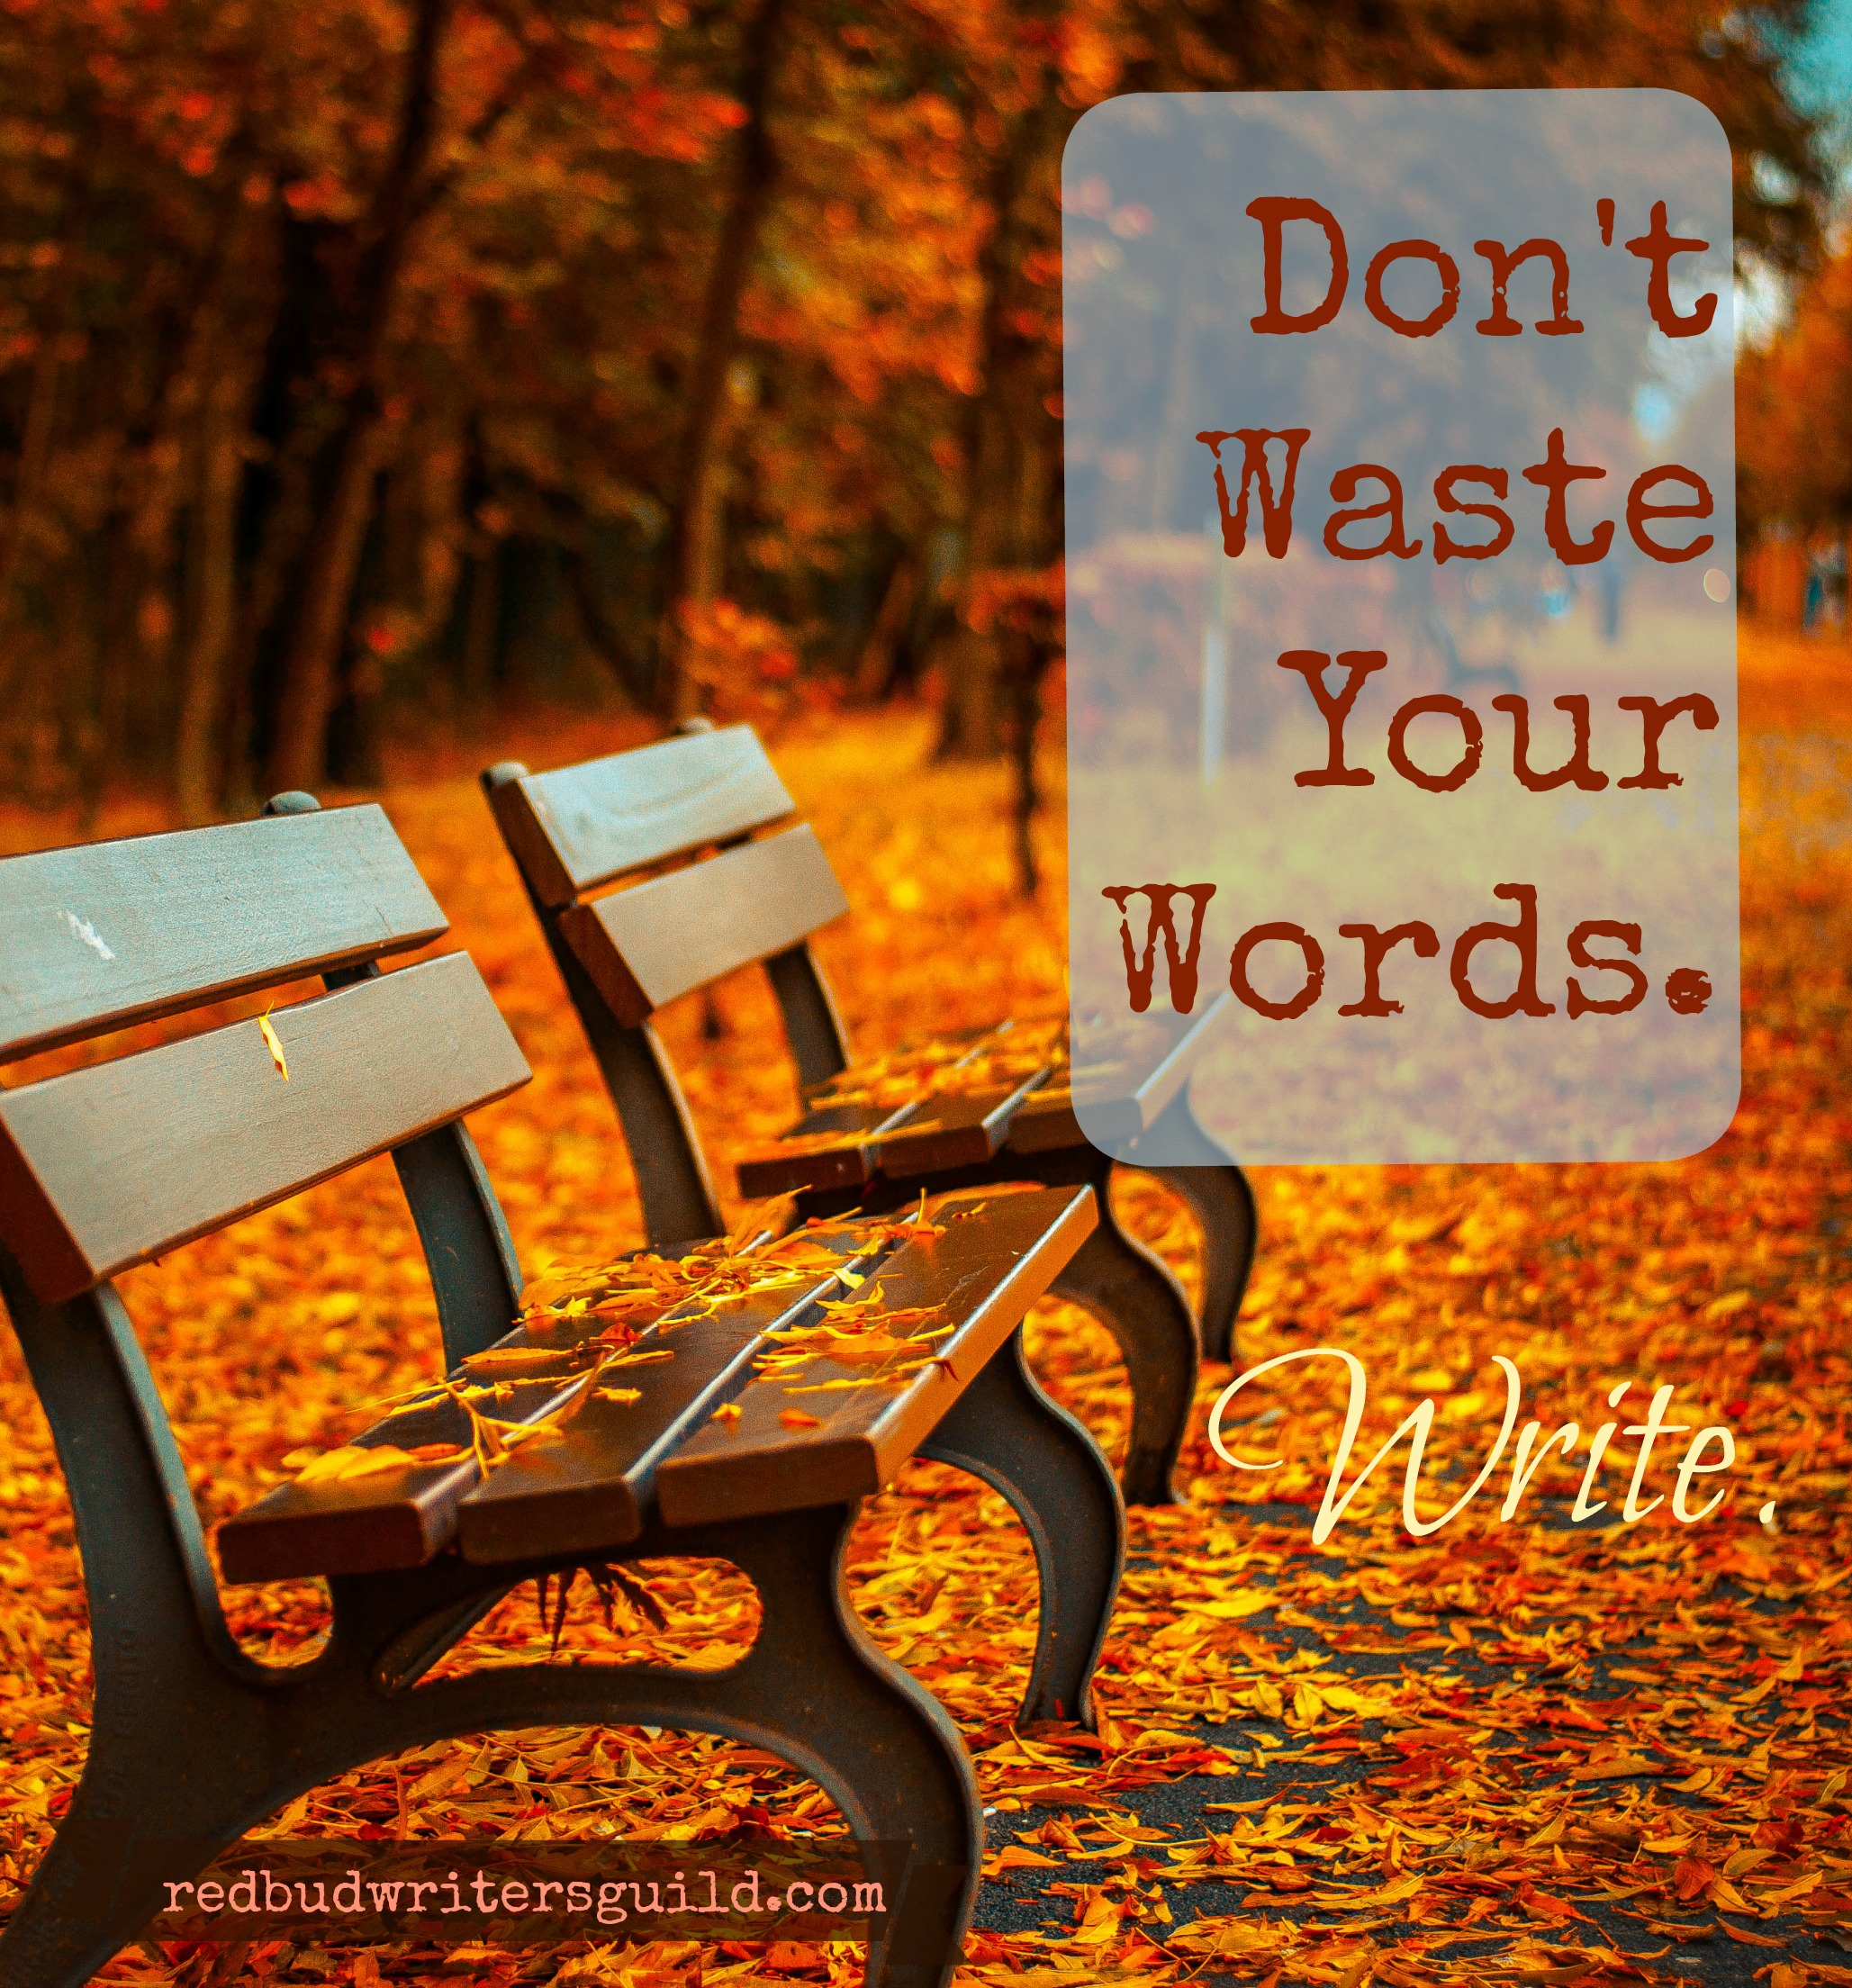 Don't waste your words. Write